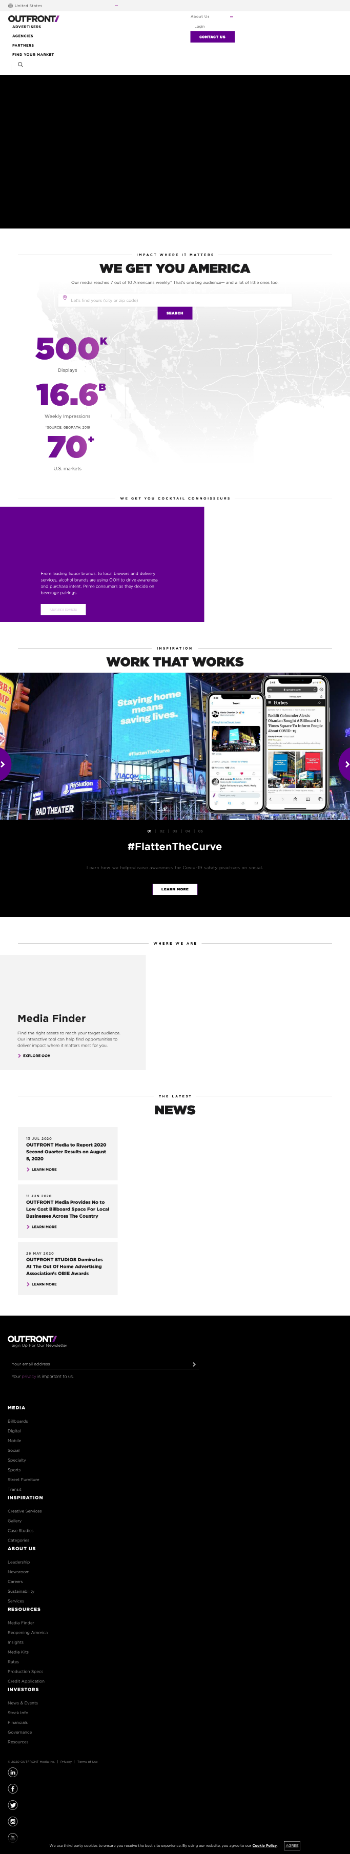 Outfront Media Inc. (REIT) Website Screenshot